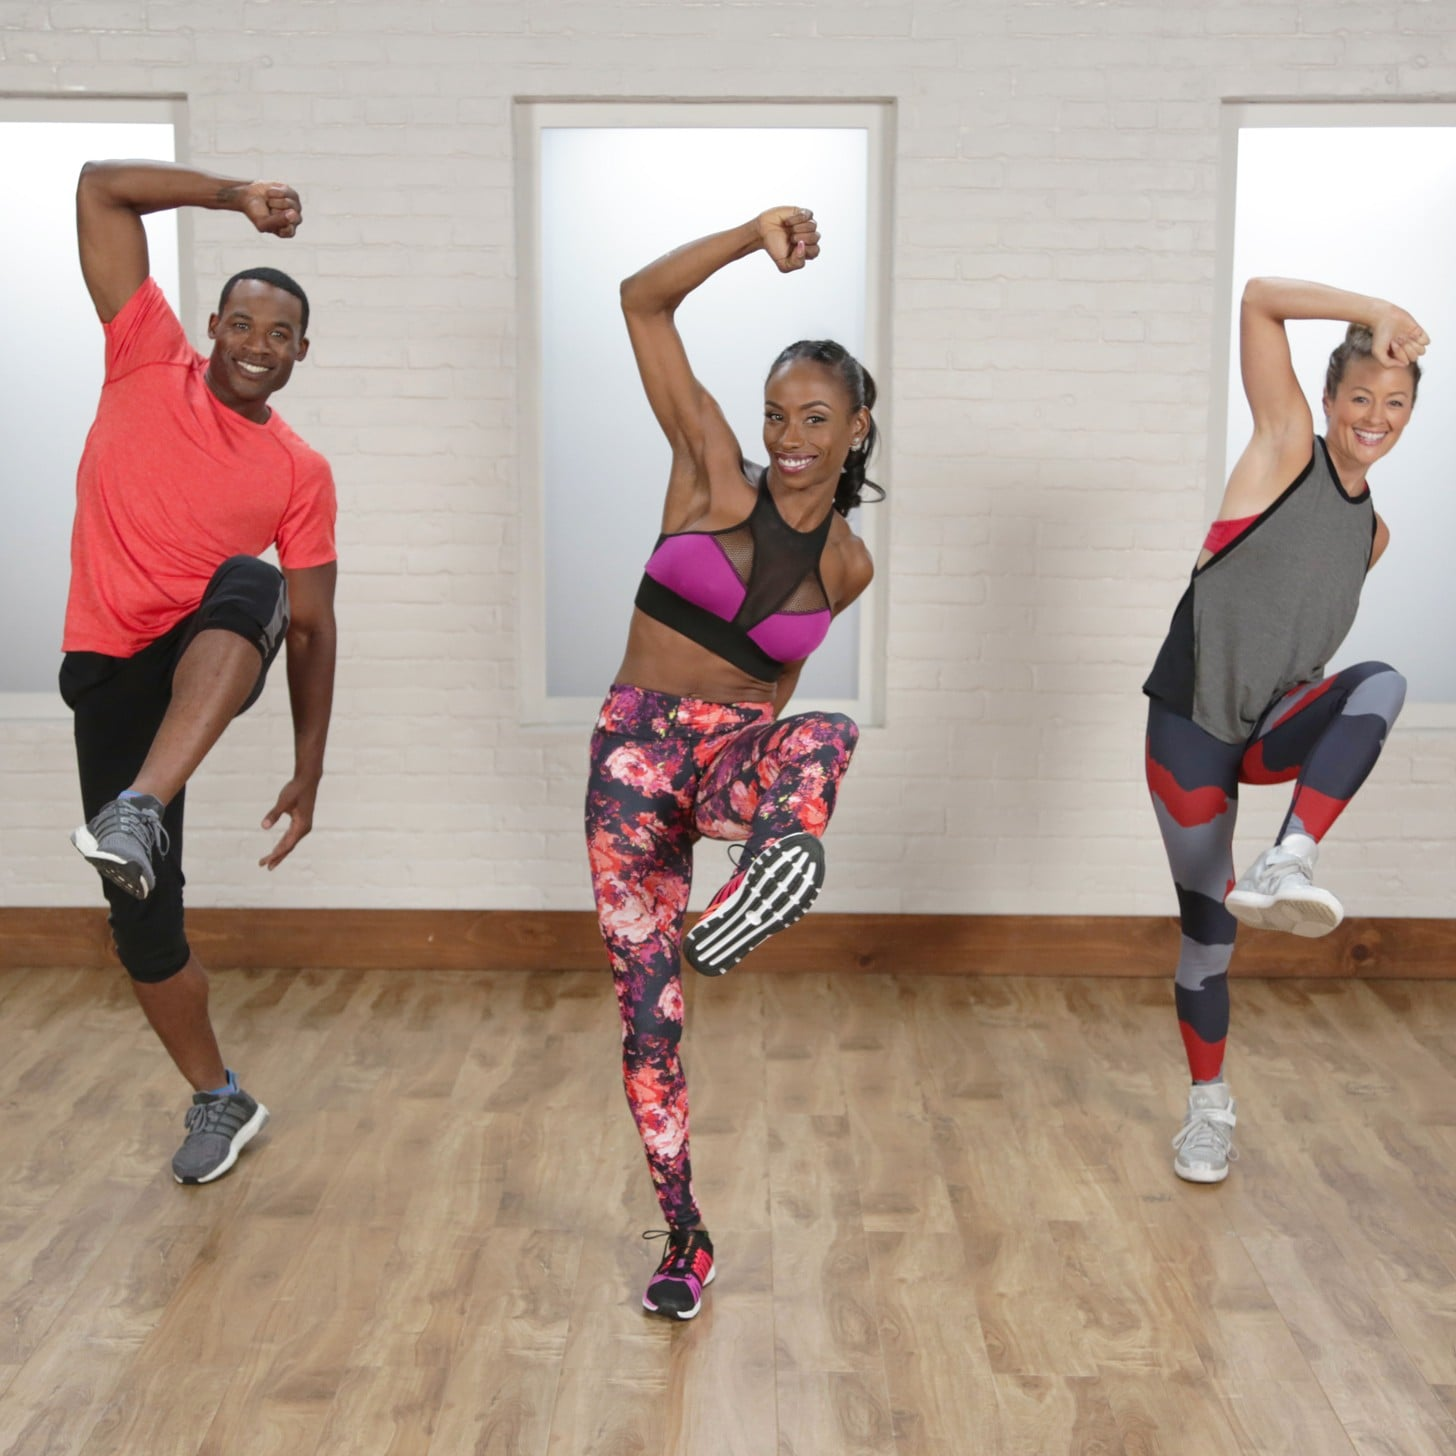 Dance Workouts You Can Do at Home | POPSUGAR Fitness